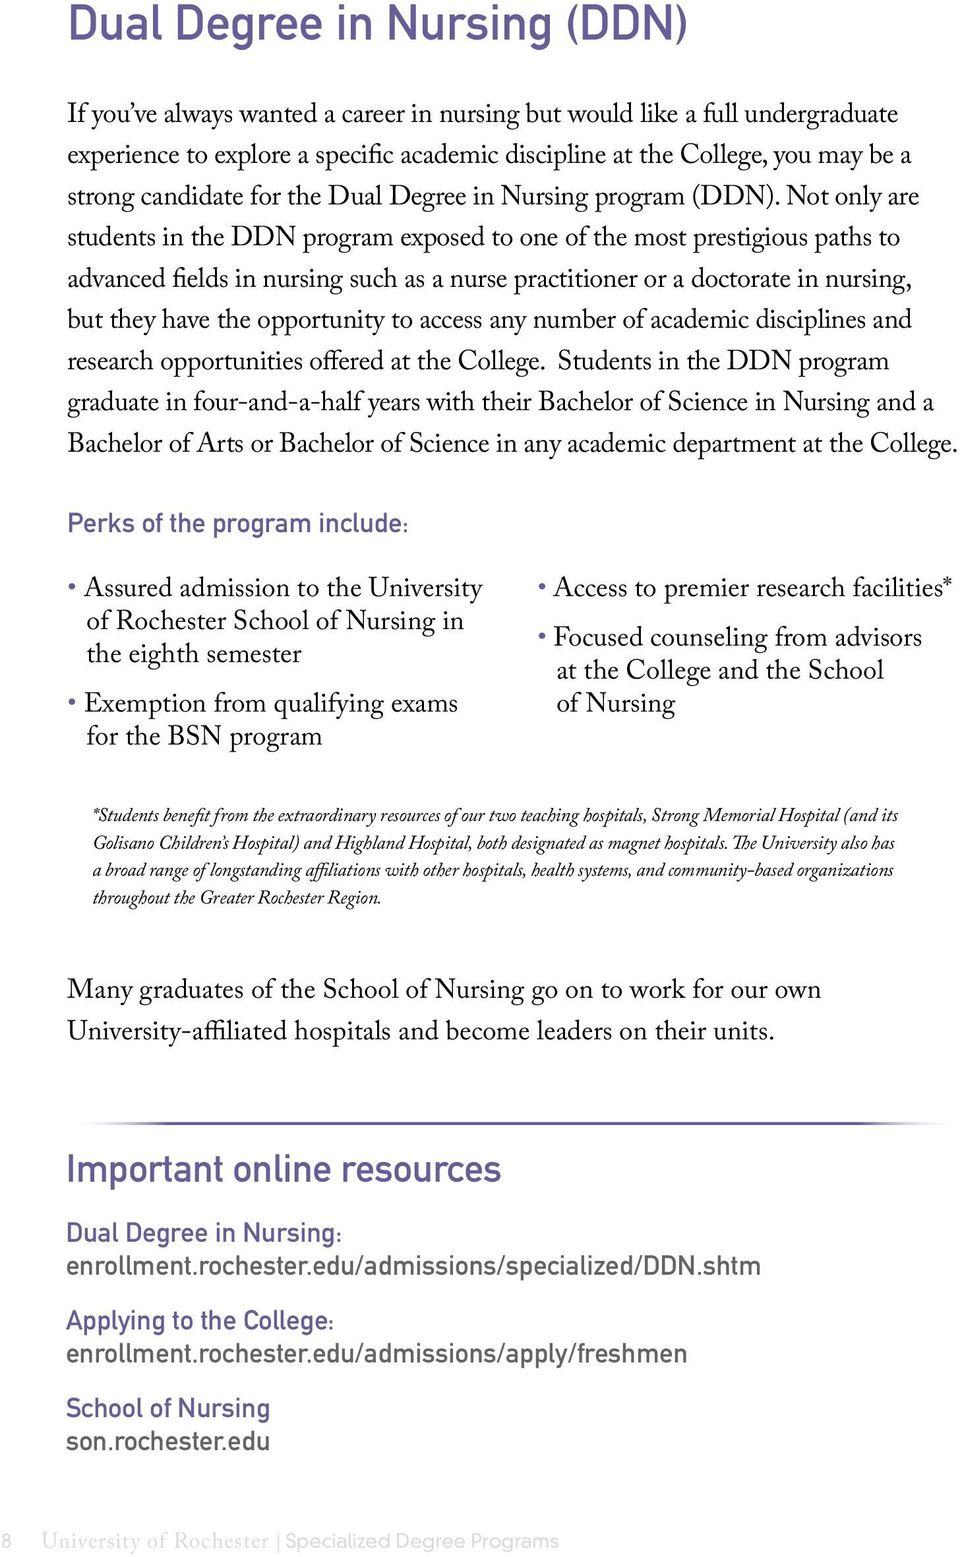 Not only are students in the DDN program exposed to one of the most prestigious paths to advanced fields in nursing such as a nurse practitioner or a doctorate in nursing, but they have the